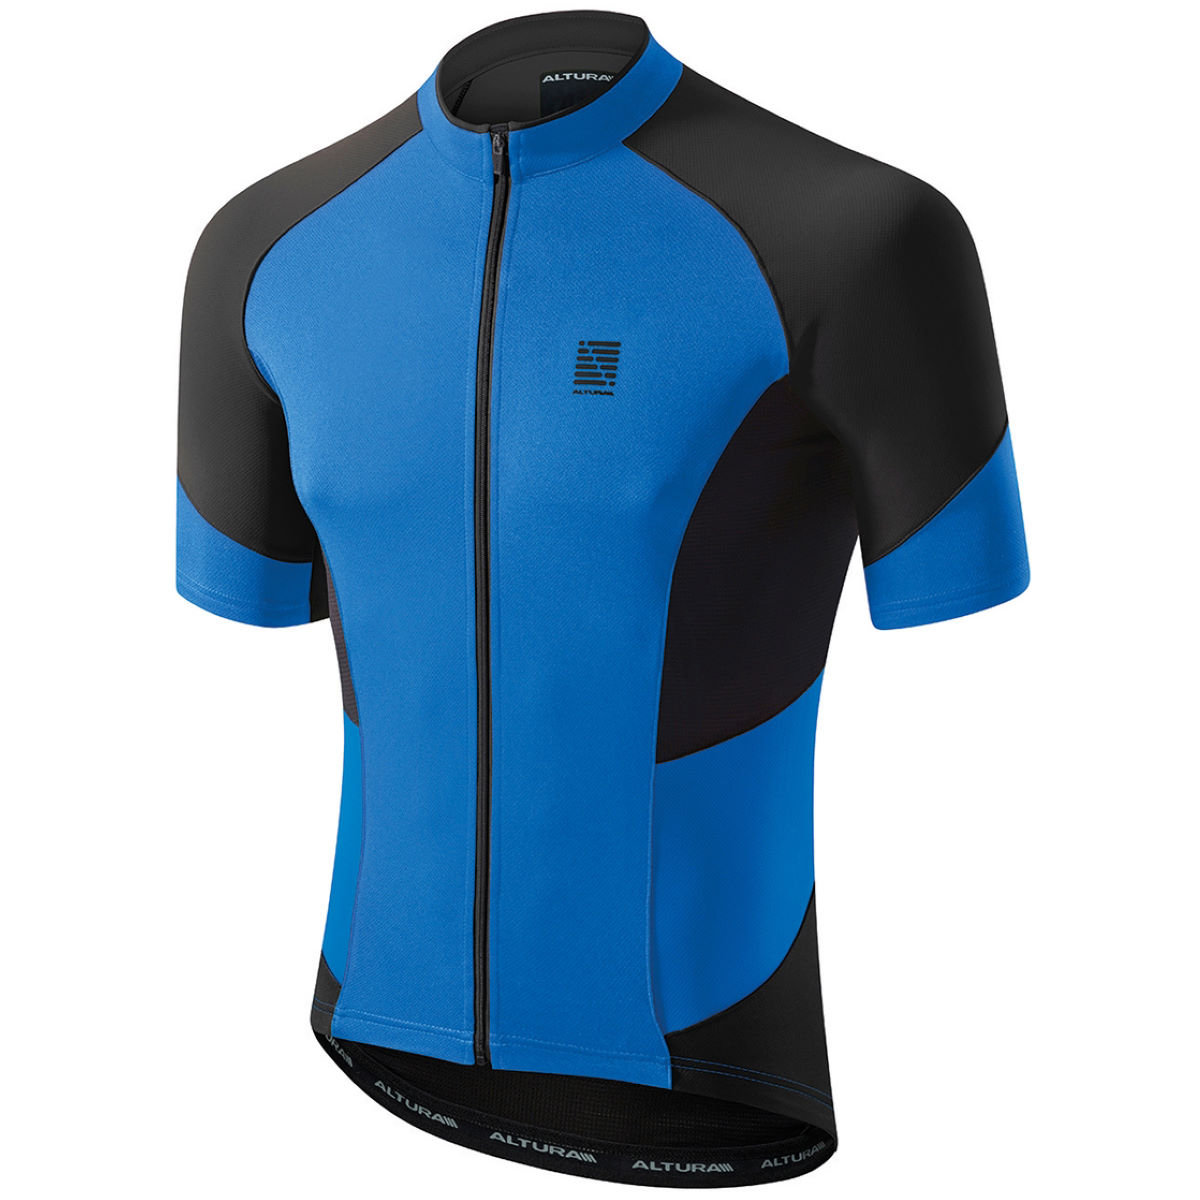 Altura Peloton Short Sleeve Jersey - Large Blue/Black